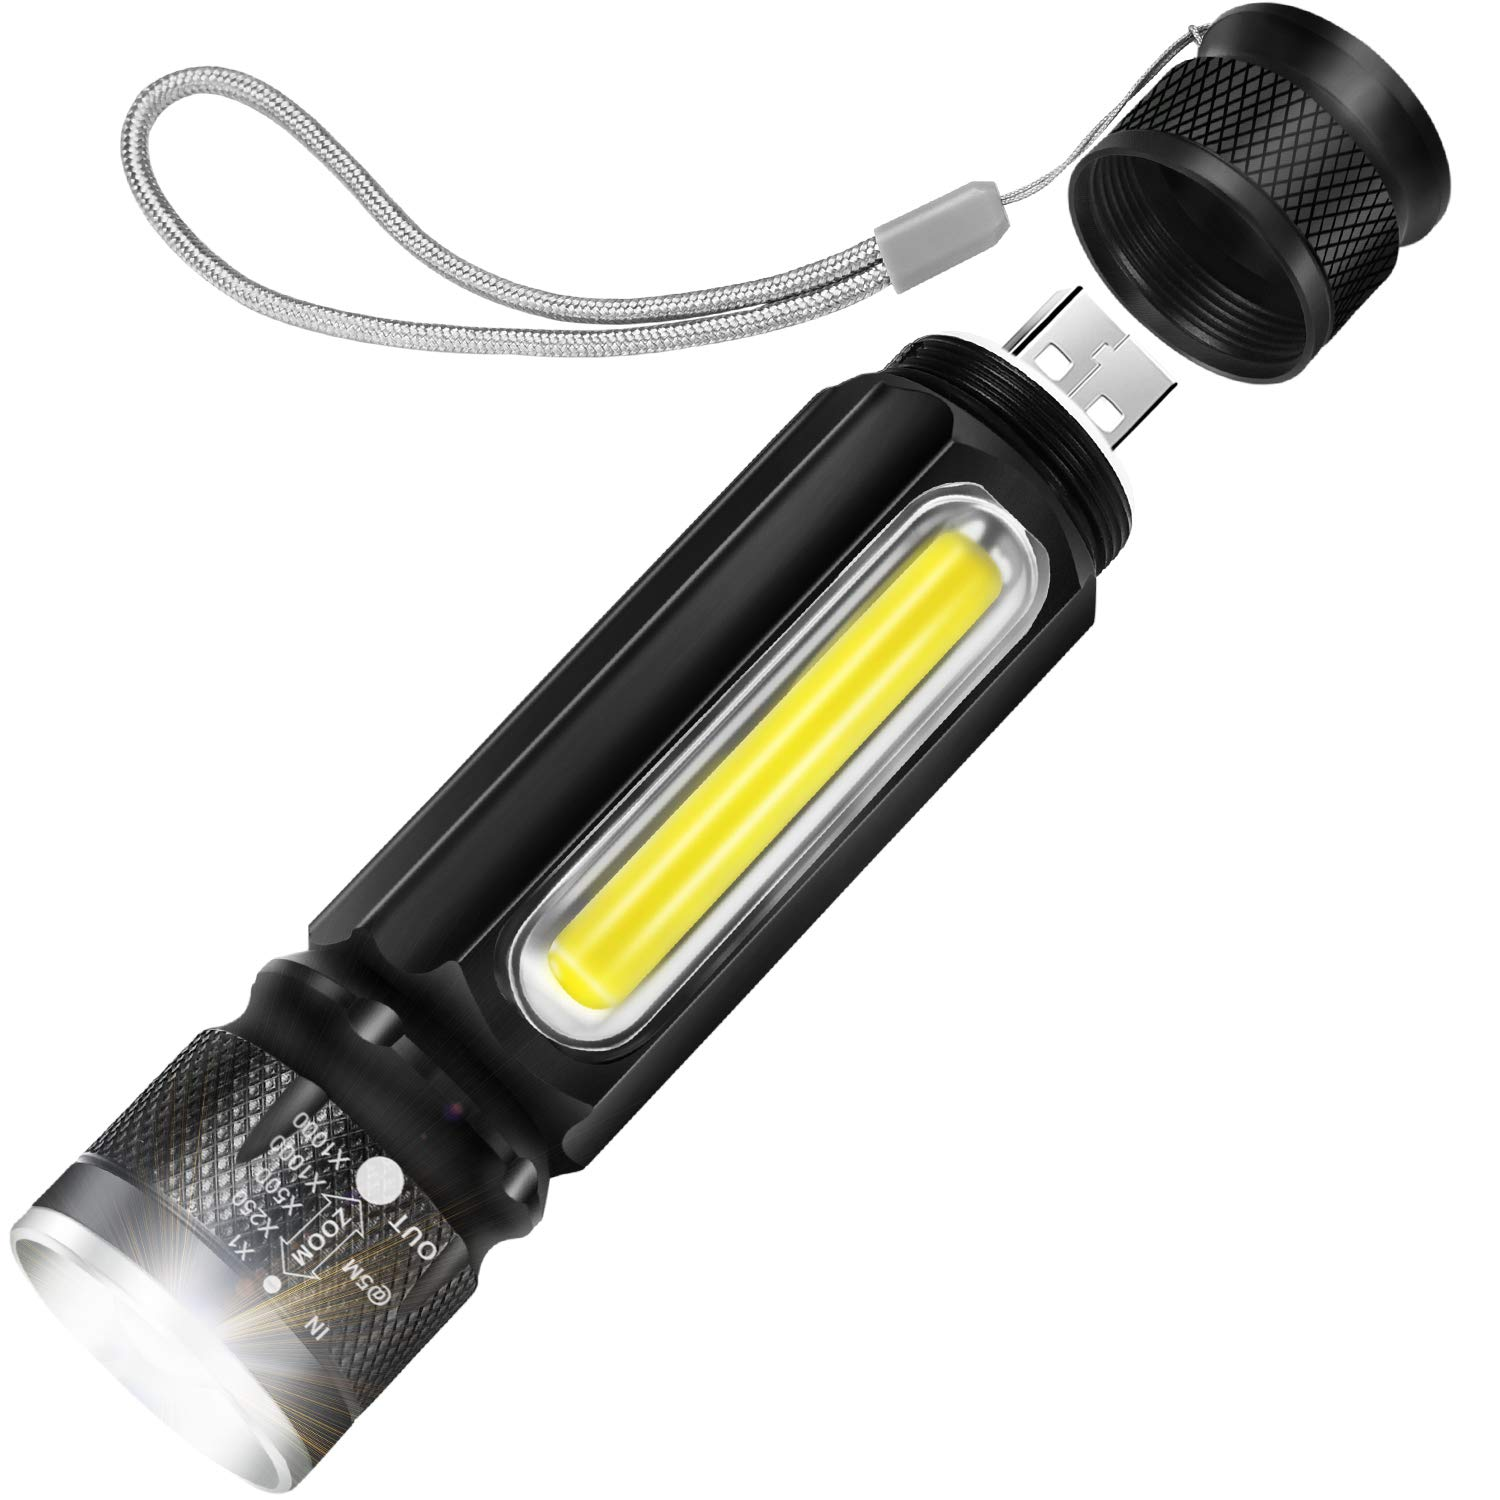 USB Rechargeable LED Torch Super Bright 800 Lumen Pocket Torch